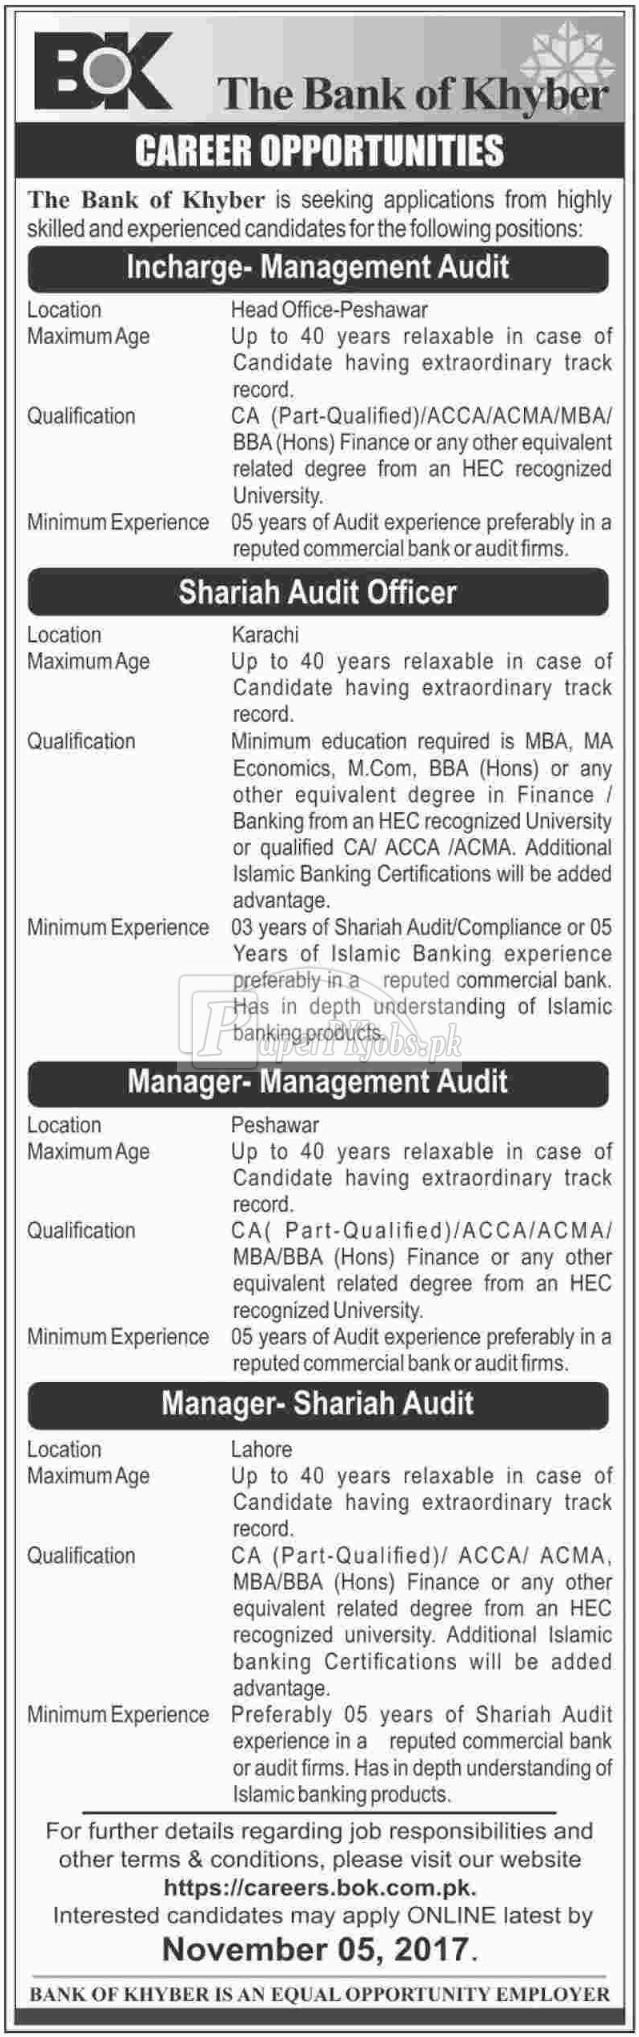 The Bank of Khyber BOK Jobs 2017